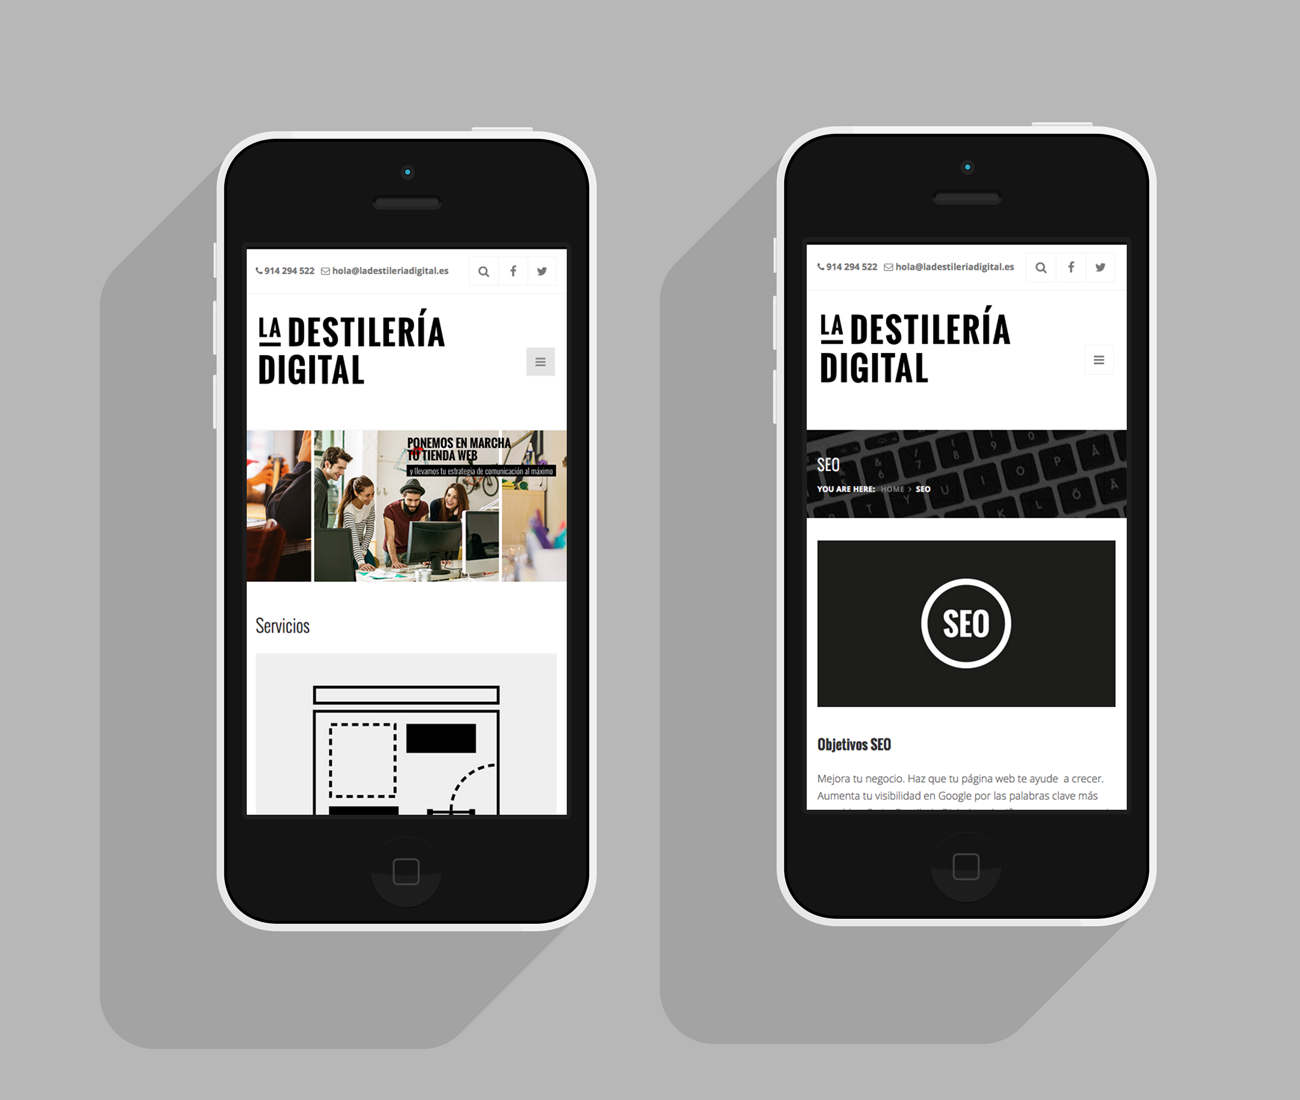 la-destileria-digital-web-mockup03.png